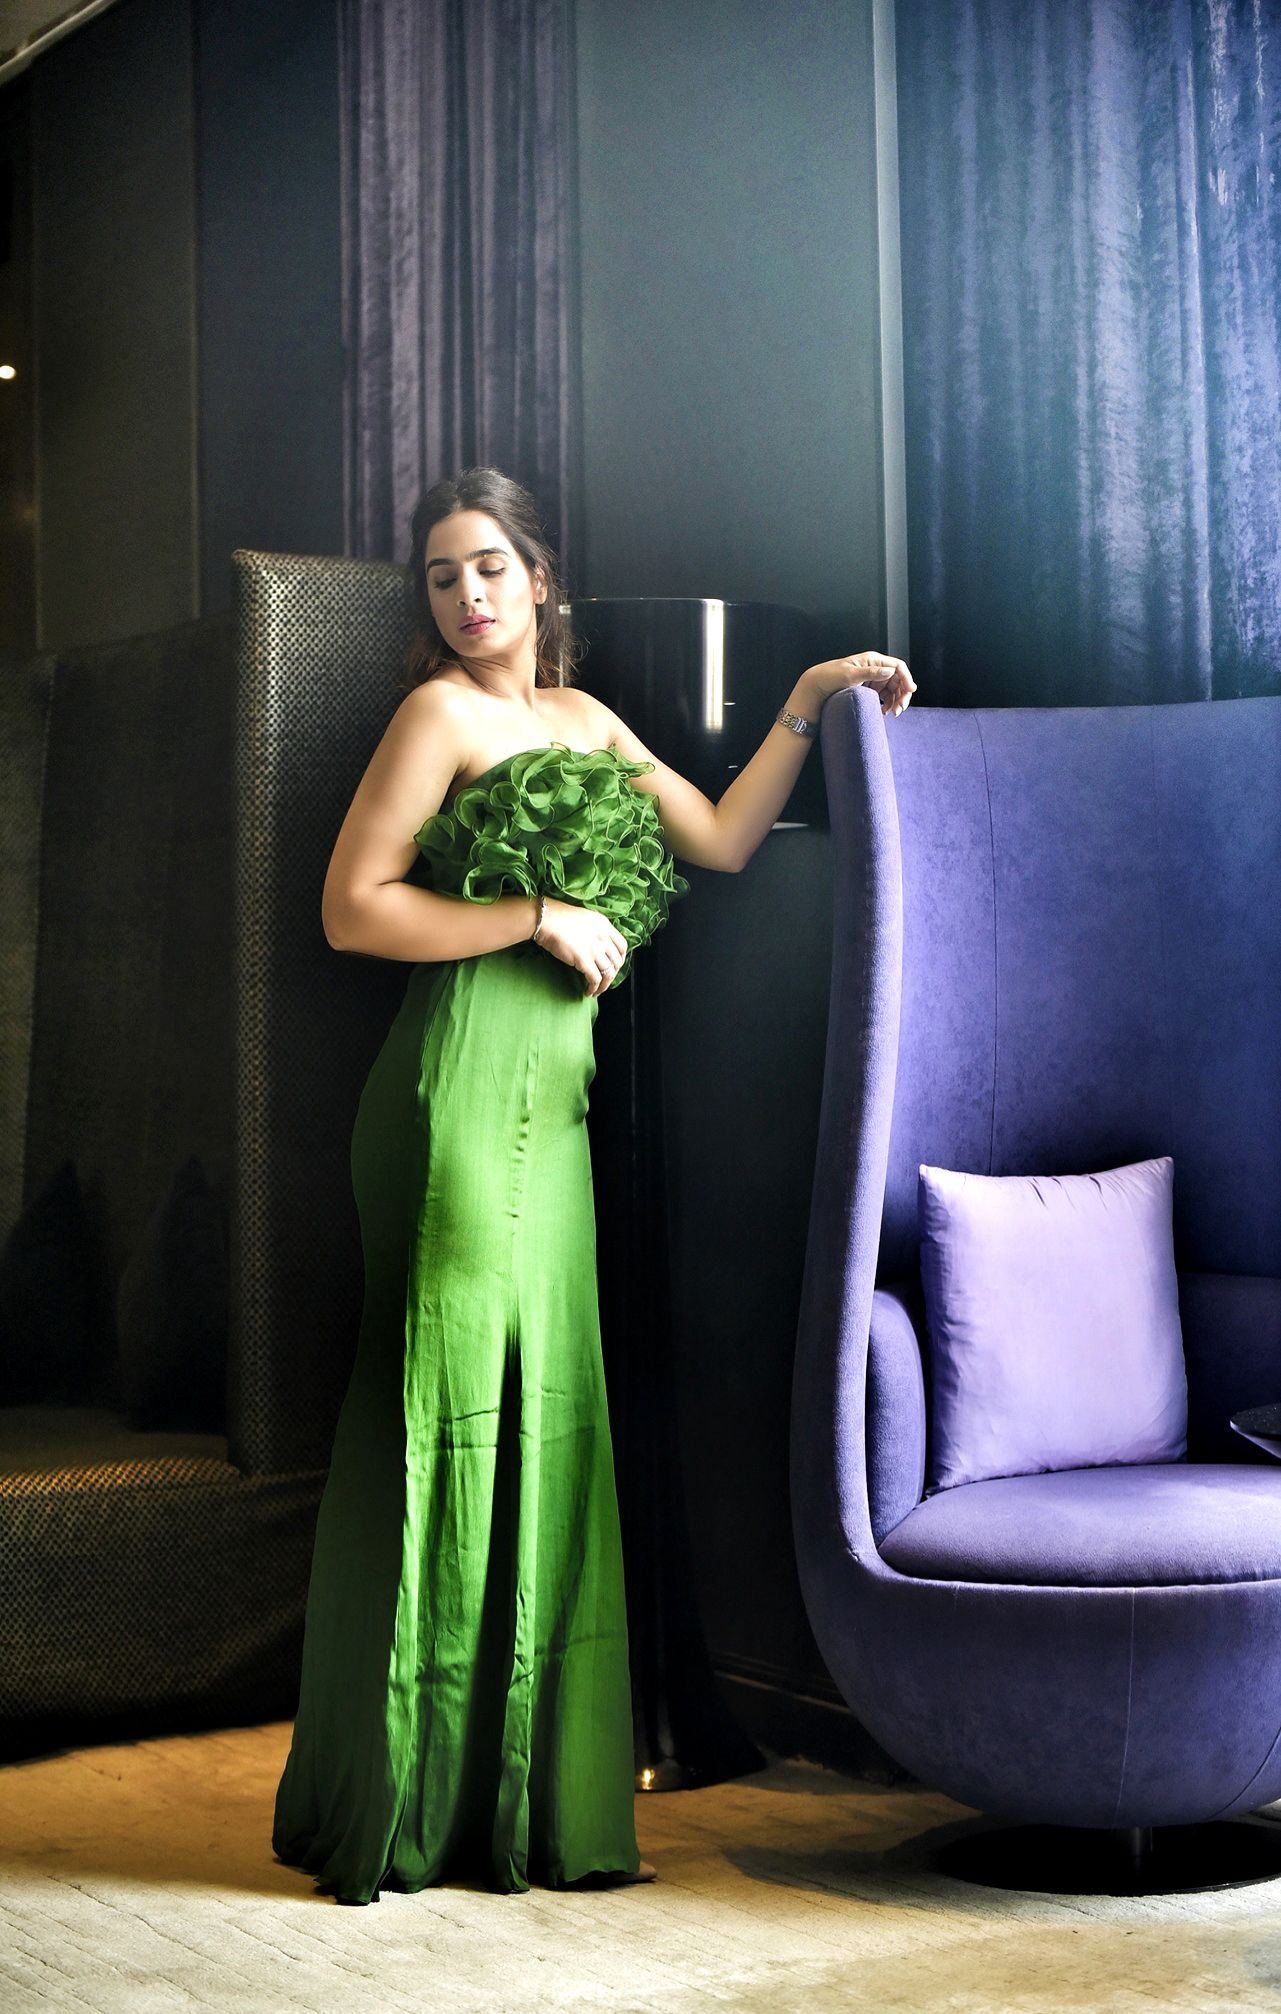 Standing Tall In Bhawna Navneet Couture Gown At Hyatt Regency In 2020 Strapless Dress Formal Stunning Outfits Couture Gowns [ 2014 x 1281 Pixel ]